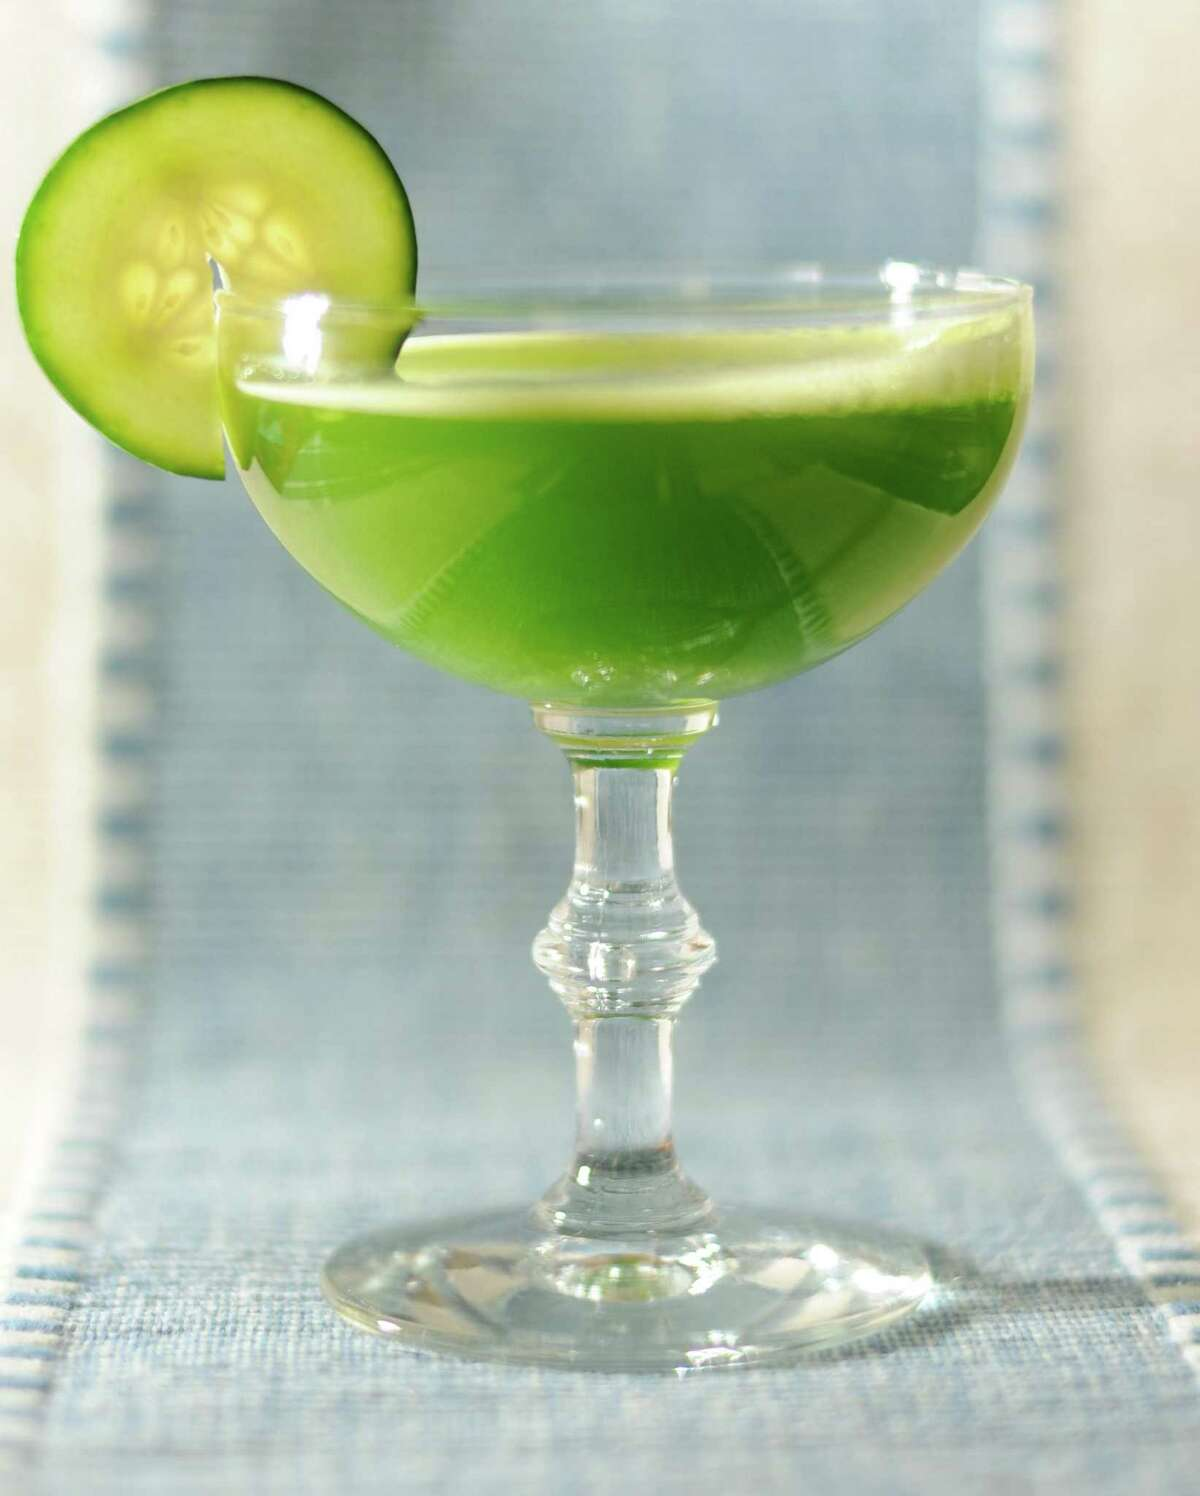 """Green Thumb cocktail from """"Meehan's Bartender Manual"""" by Jim Meehan."""